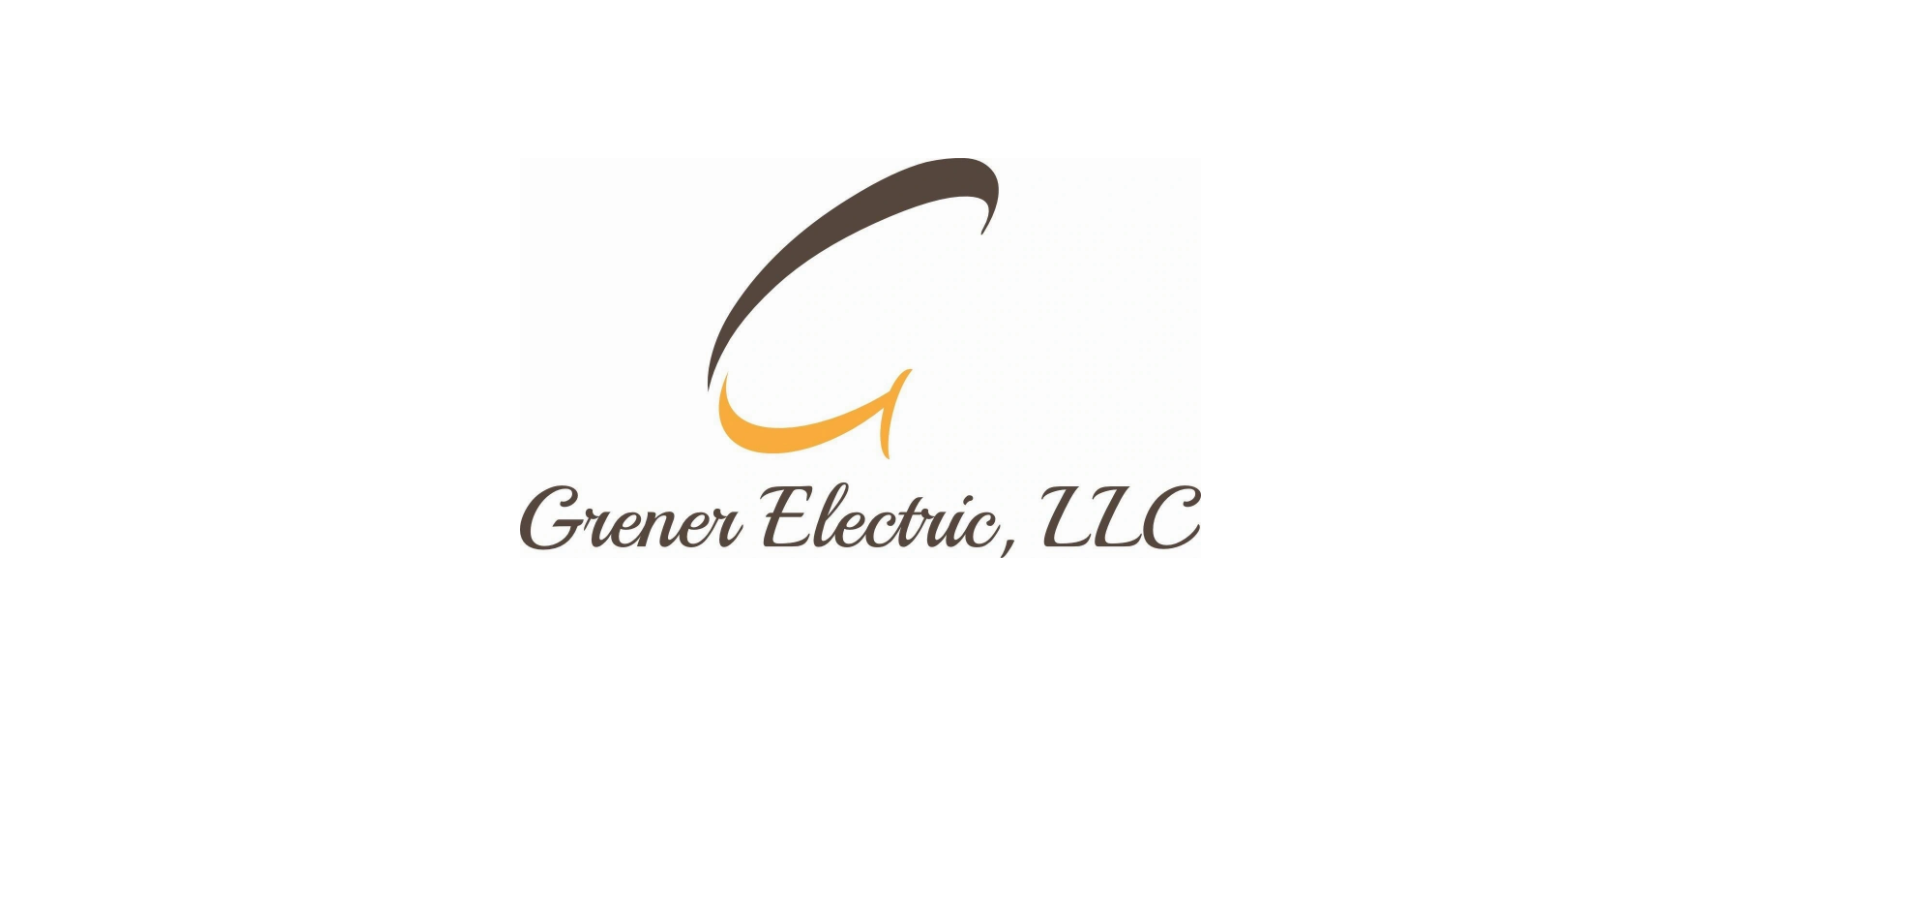 Grener Electric, LLC